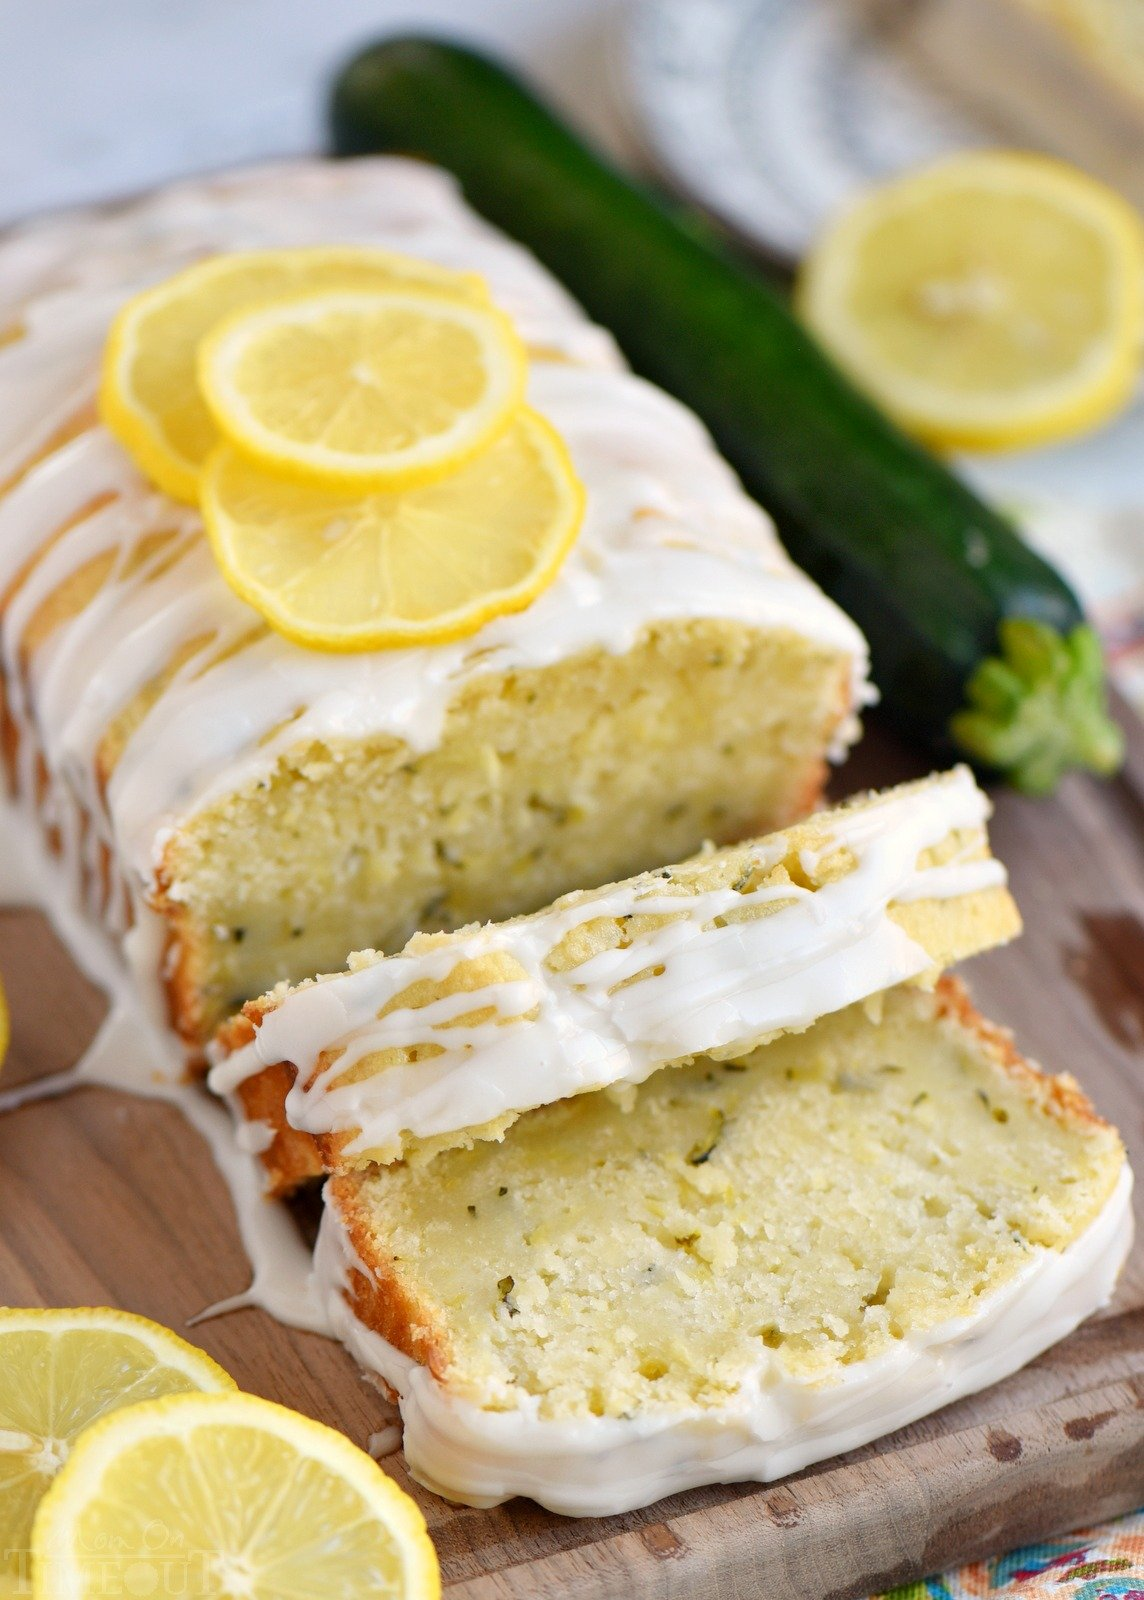 Recipe For Up Cake With Lemon Glaze